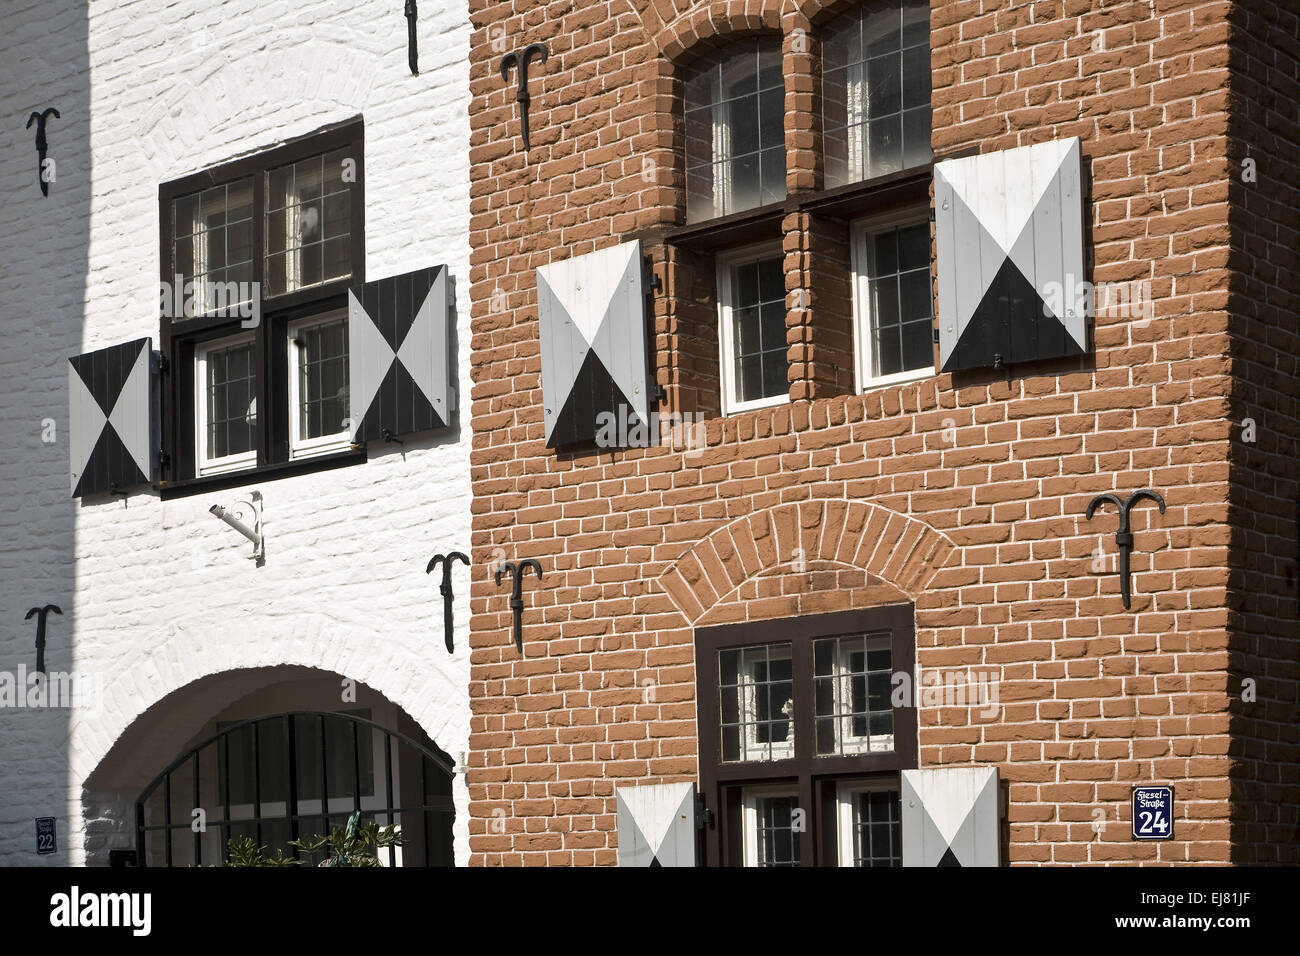 Detail House, Moers, Germany Stock Photo